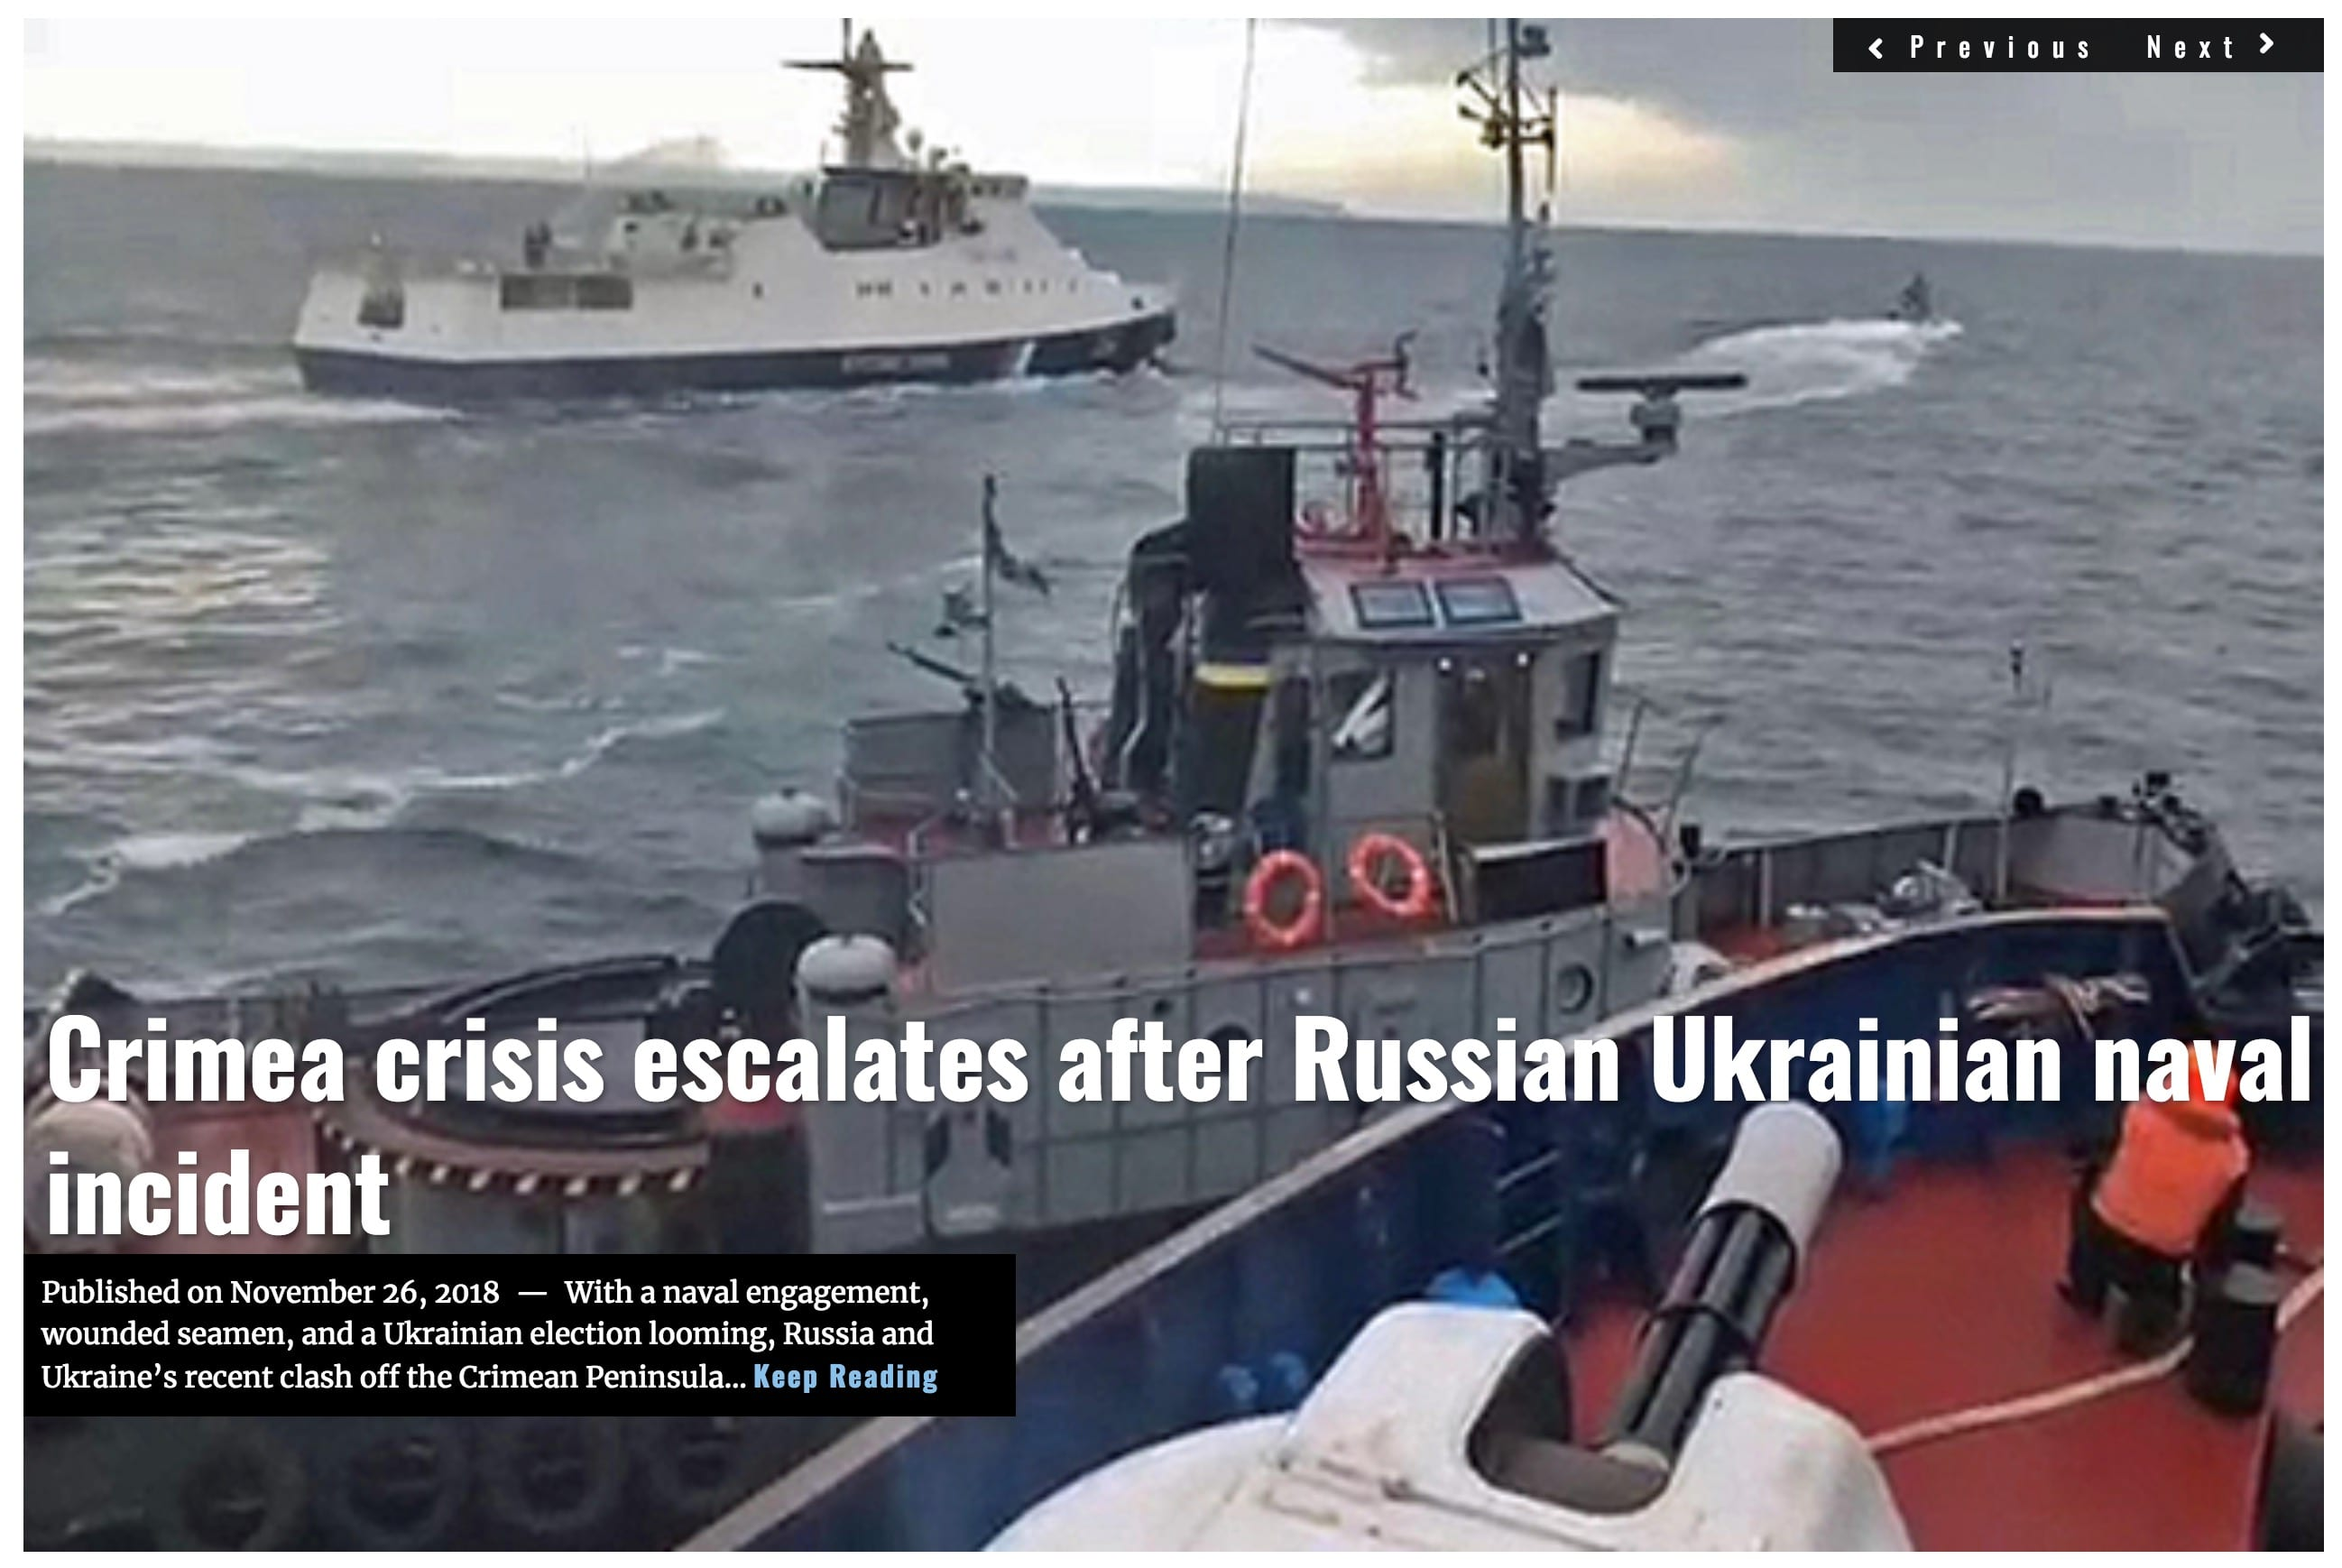 Image Lima Charlie News Headline Crimea Crisis Escalates NOV 26 2018